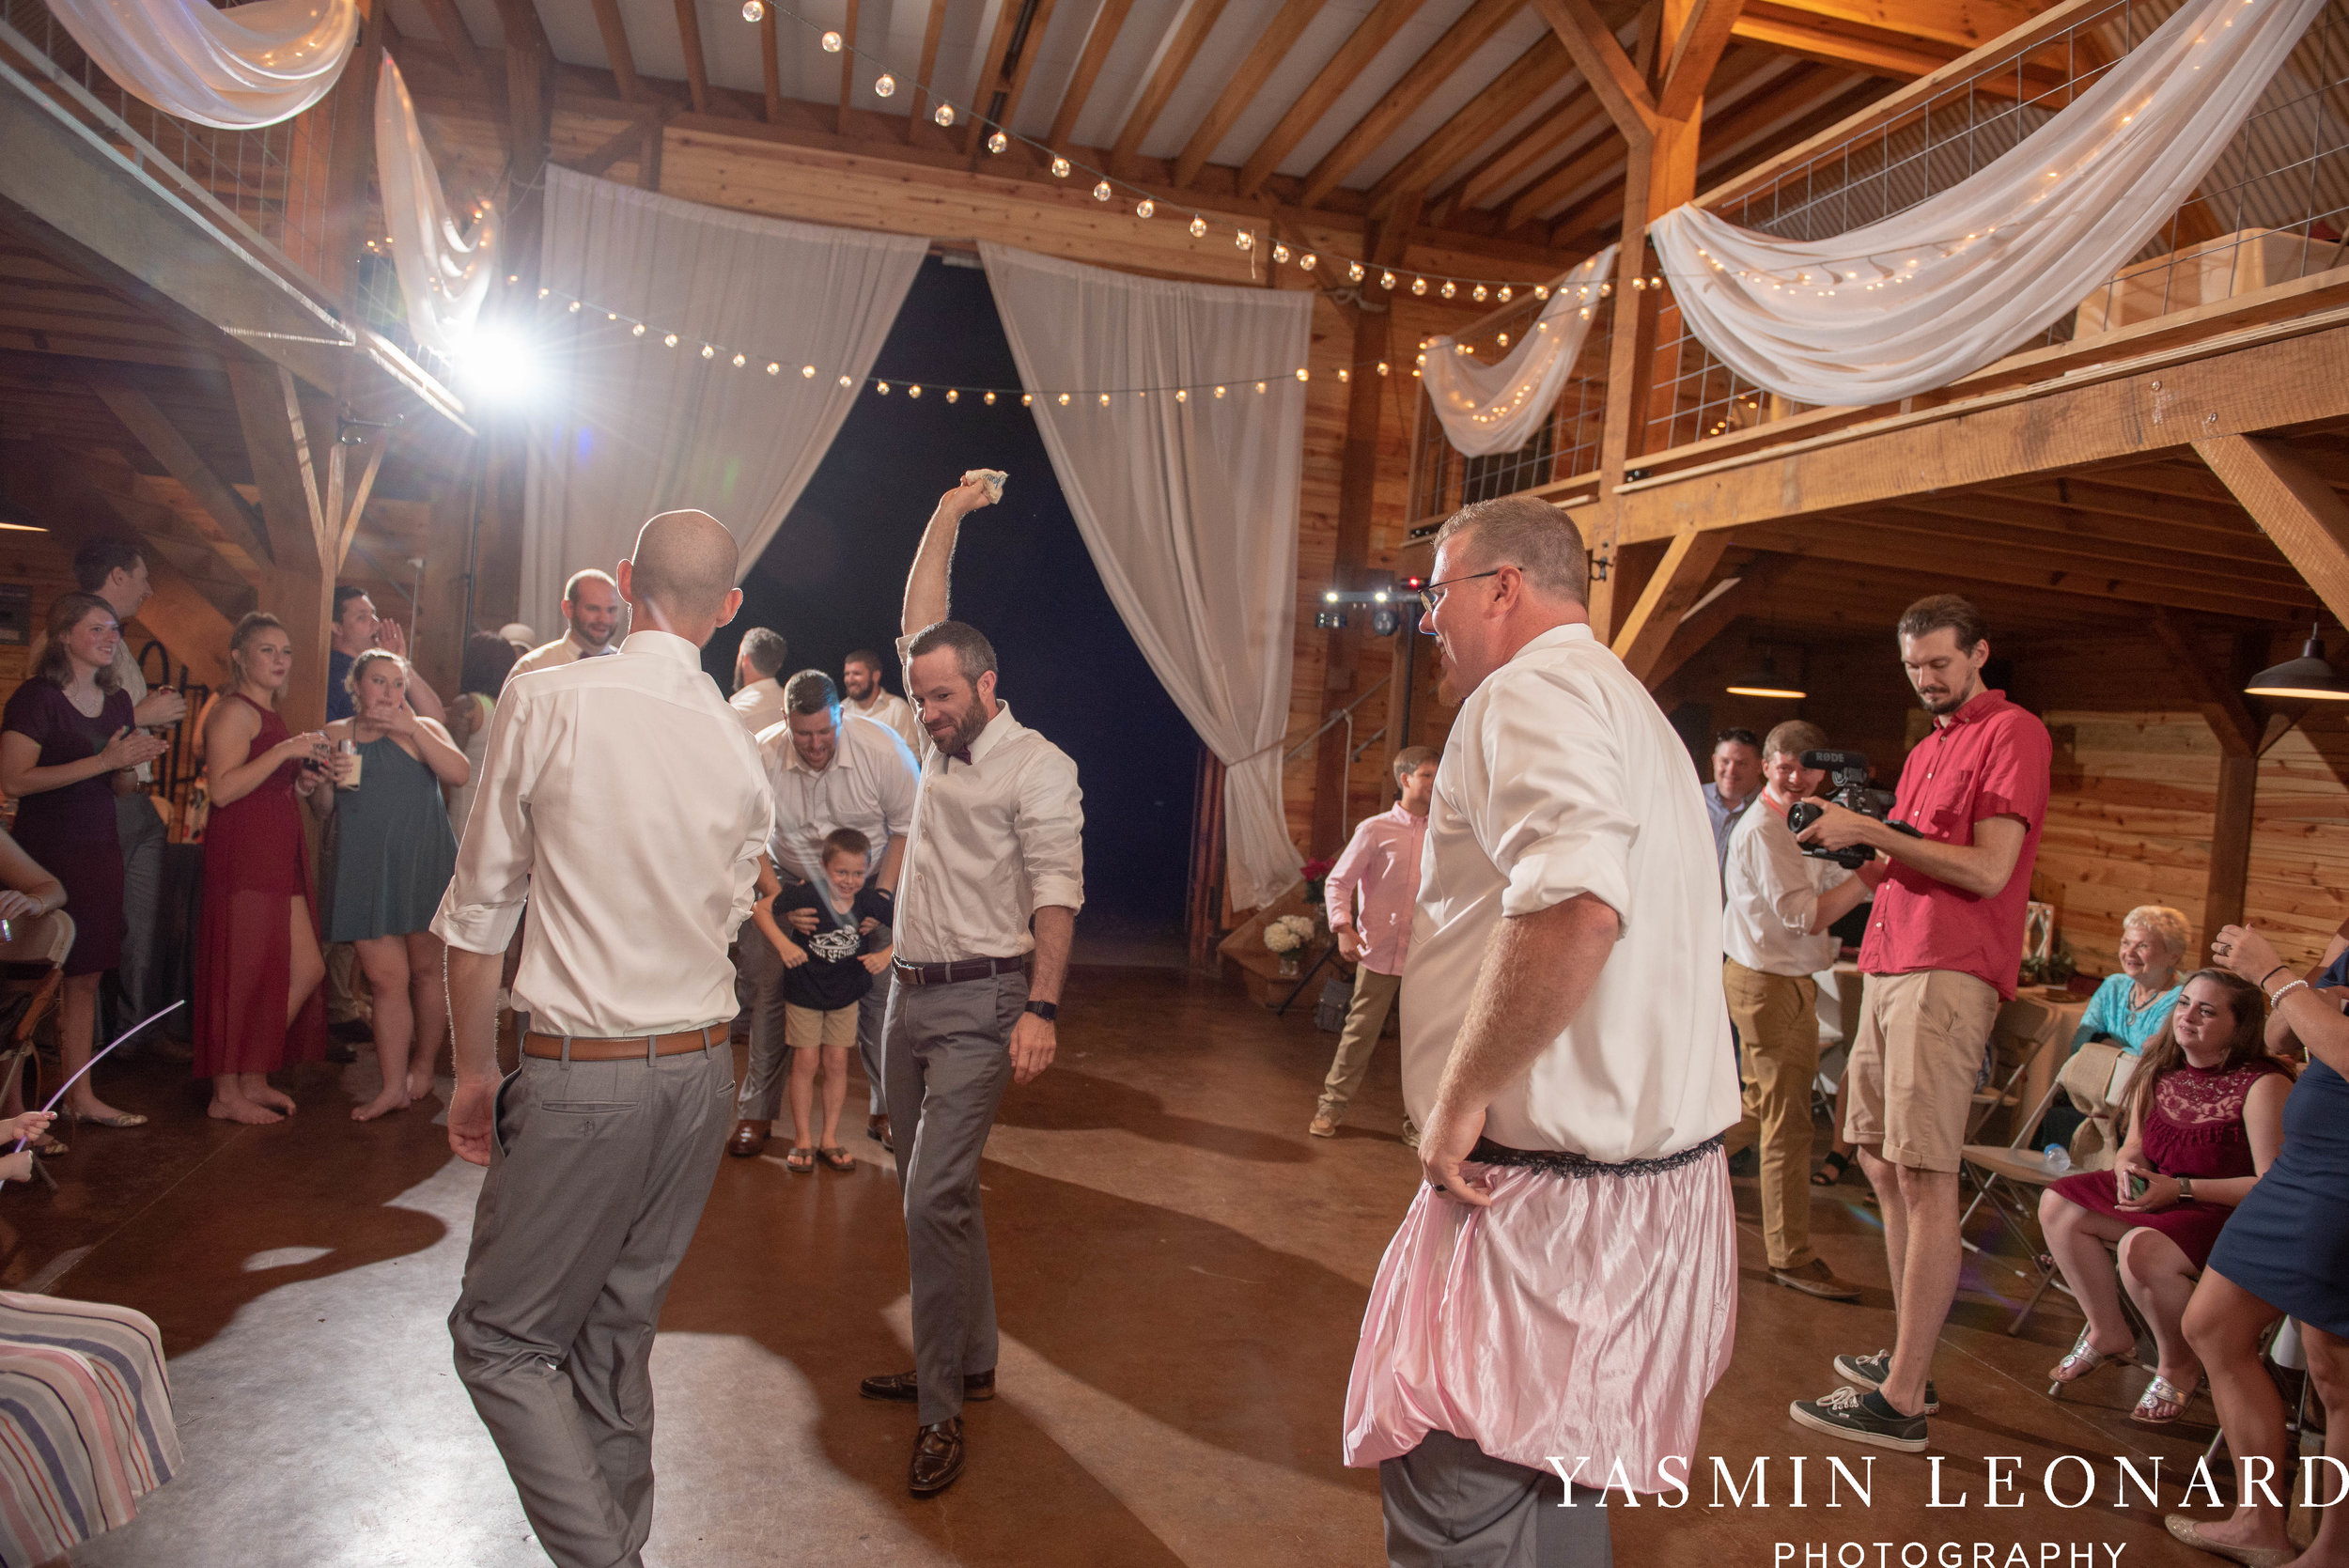 Danner Farms - NC Wedding Venues - NC Barns - Statesville NC - NC Wedding Photographer - High Point Wedding Photographer - Yasmin Leonard Photography-90.jpg